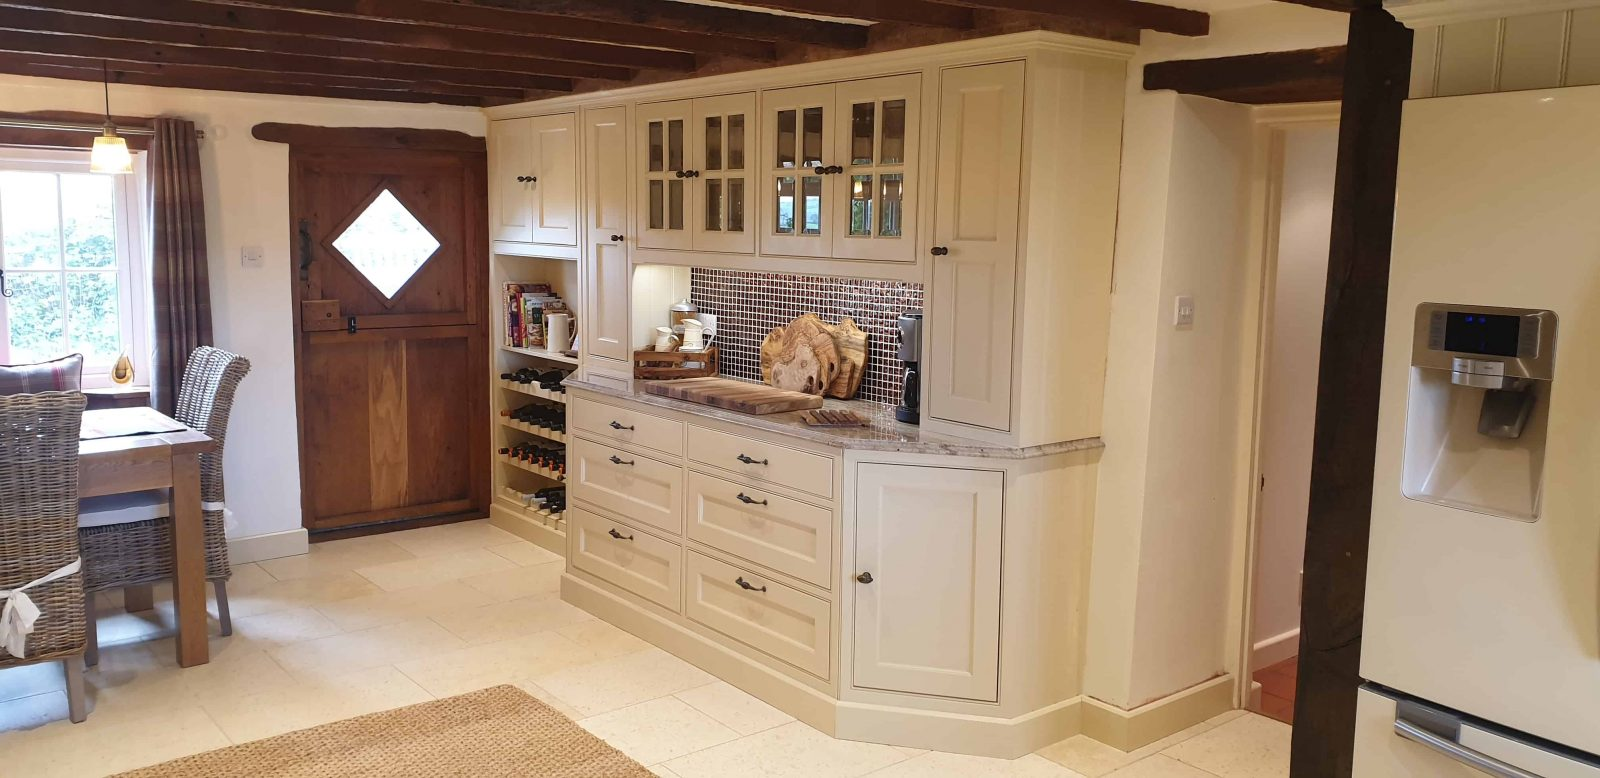 a traditional country style handmade in frame kitchen in a custom cream paint